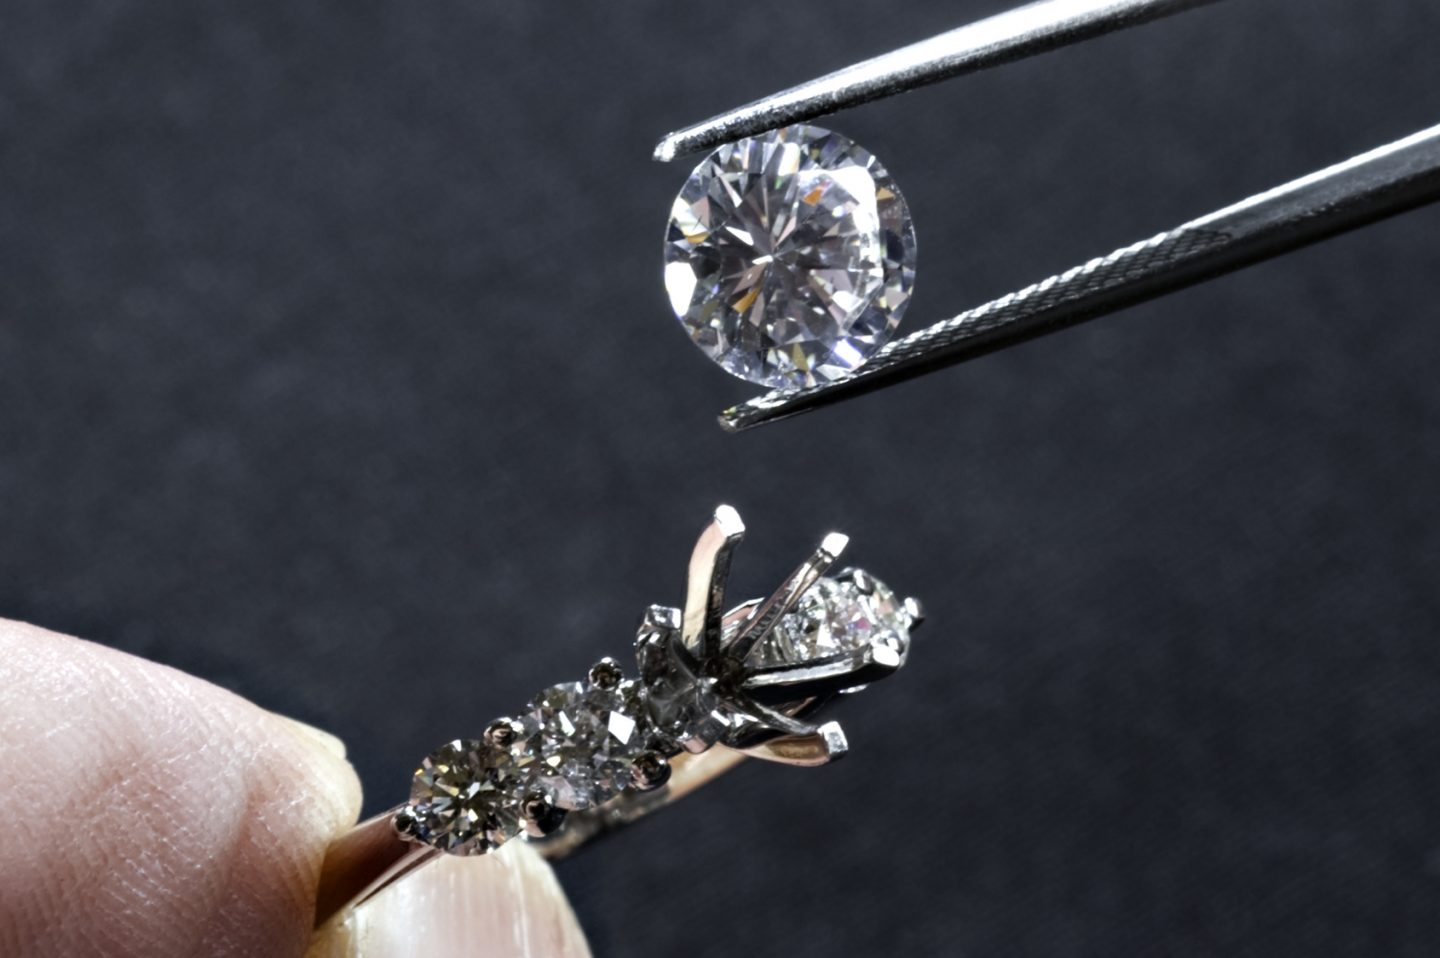 Ways to protect your jewelry from wear and tear